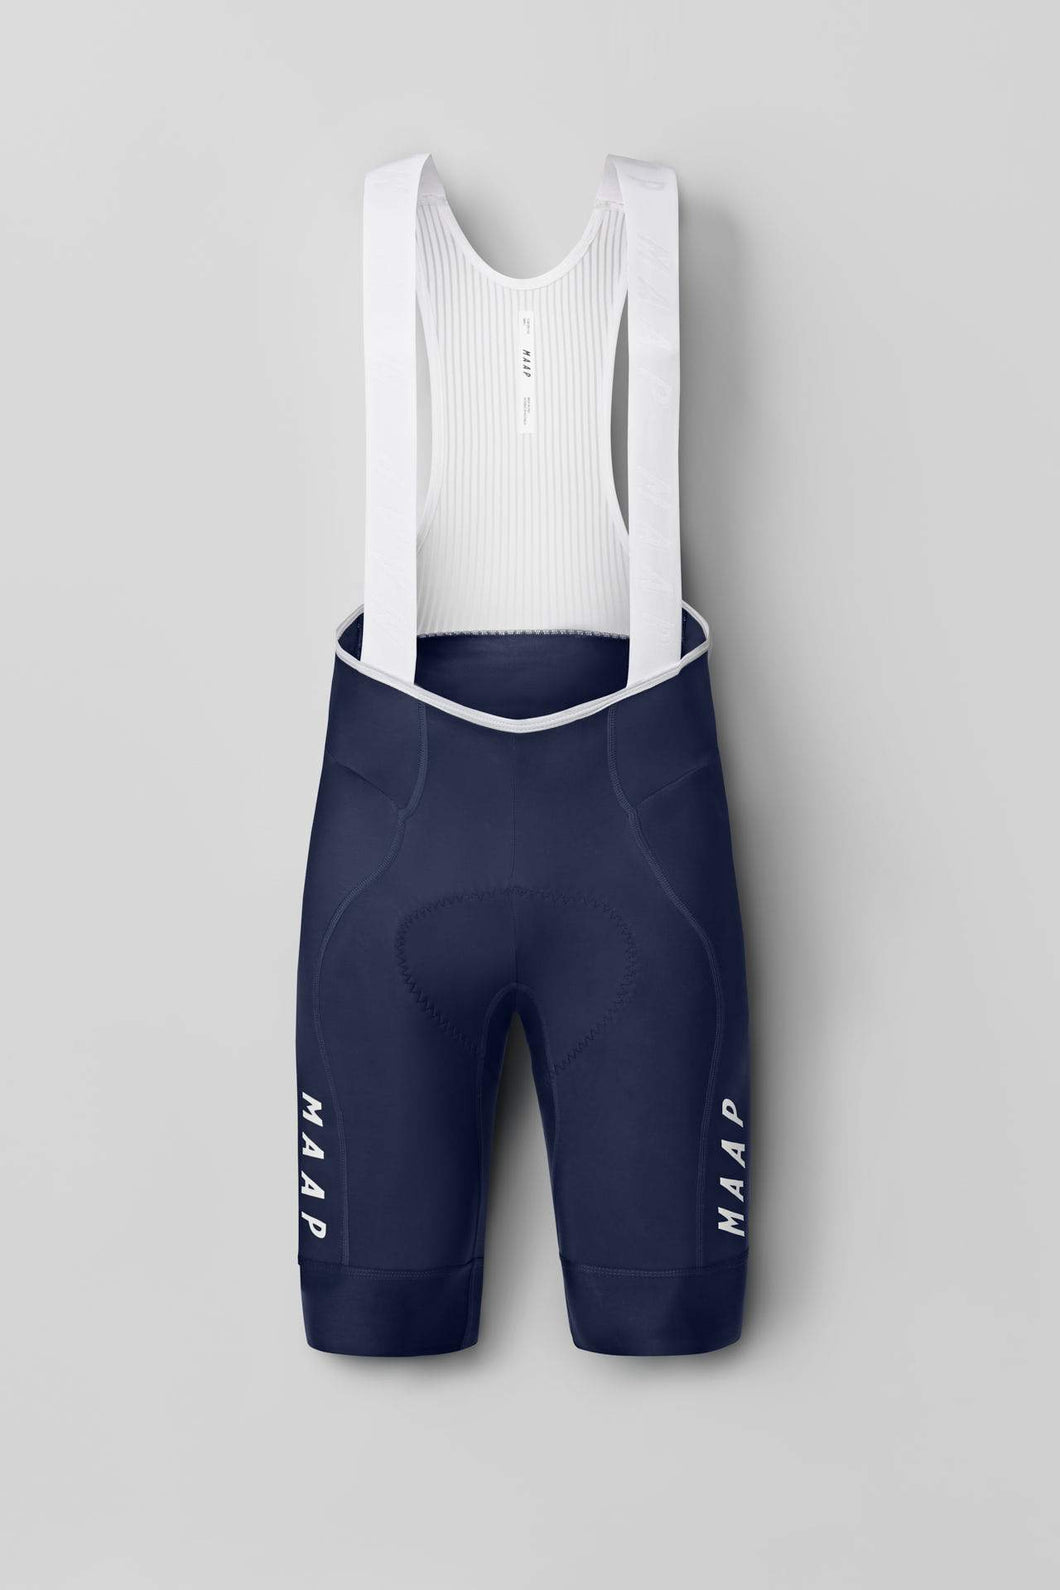 MAAP Team Bib Evo - Navy / White